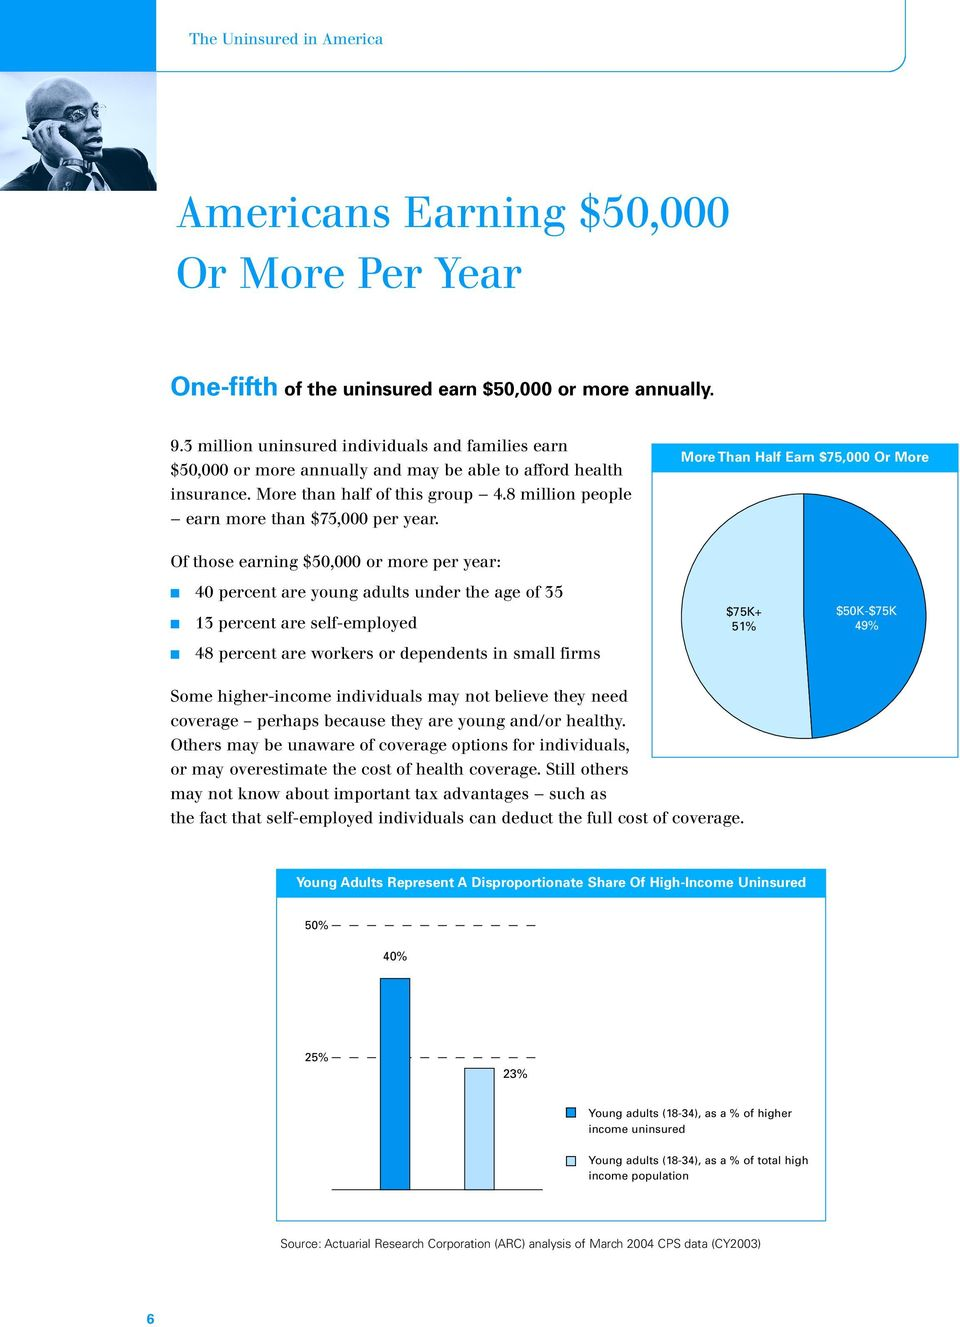 More Than Half Earn $75,000 Or More Of those earning $50,000 or more per year: 40 percent are young adults under the age of 35 13 percent are self-employed $75K+ 51% $50K-$75K 49% 48 percent are